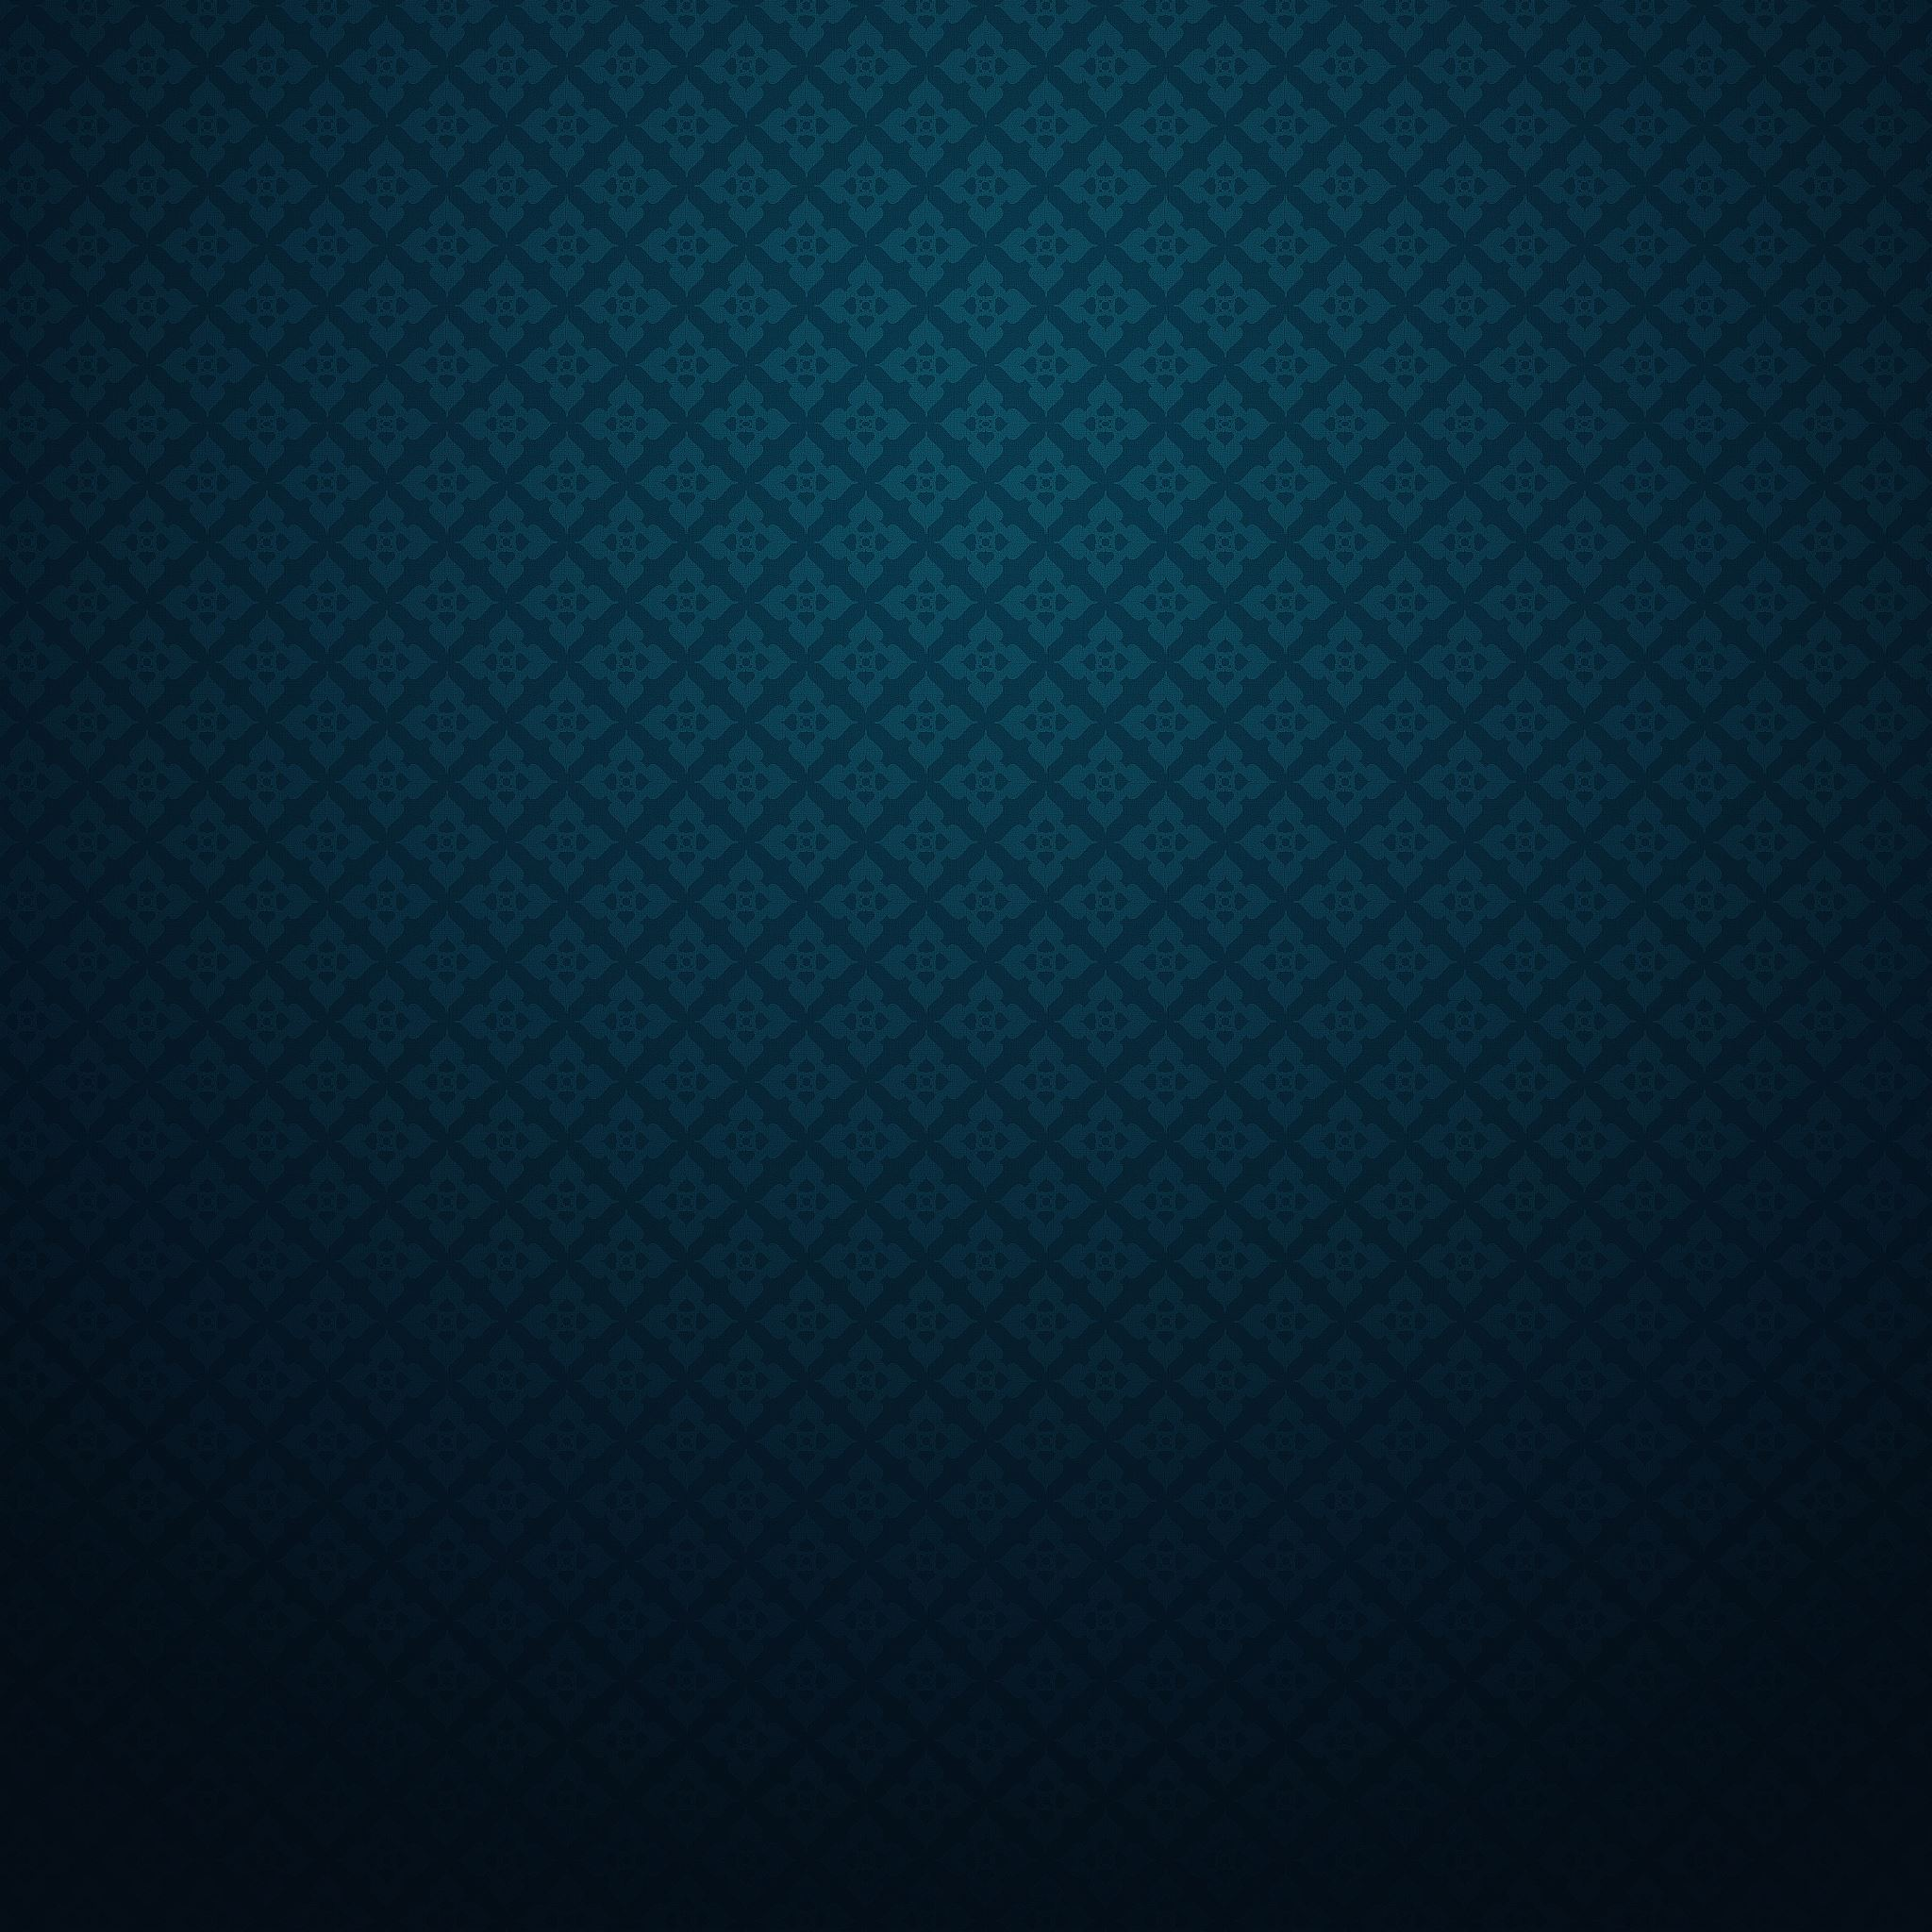 Simple Textured iPad Air wallpaper